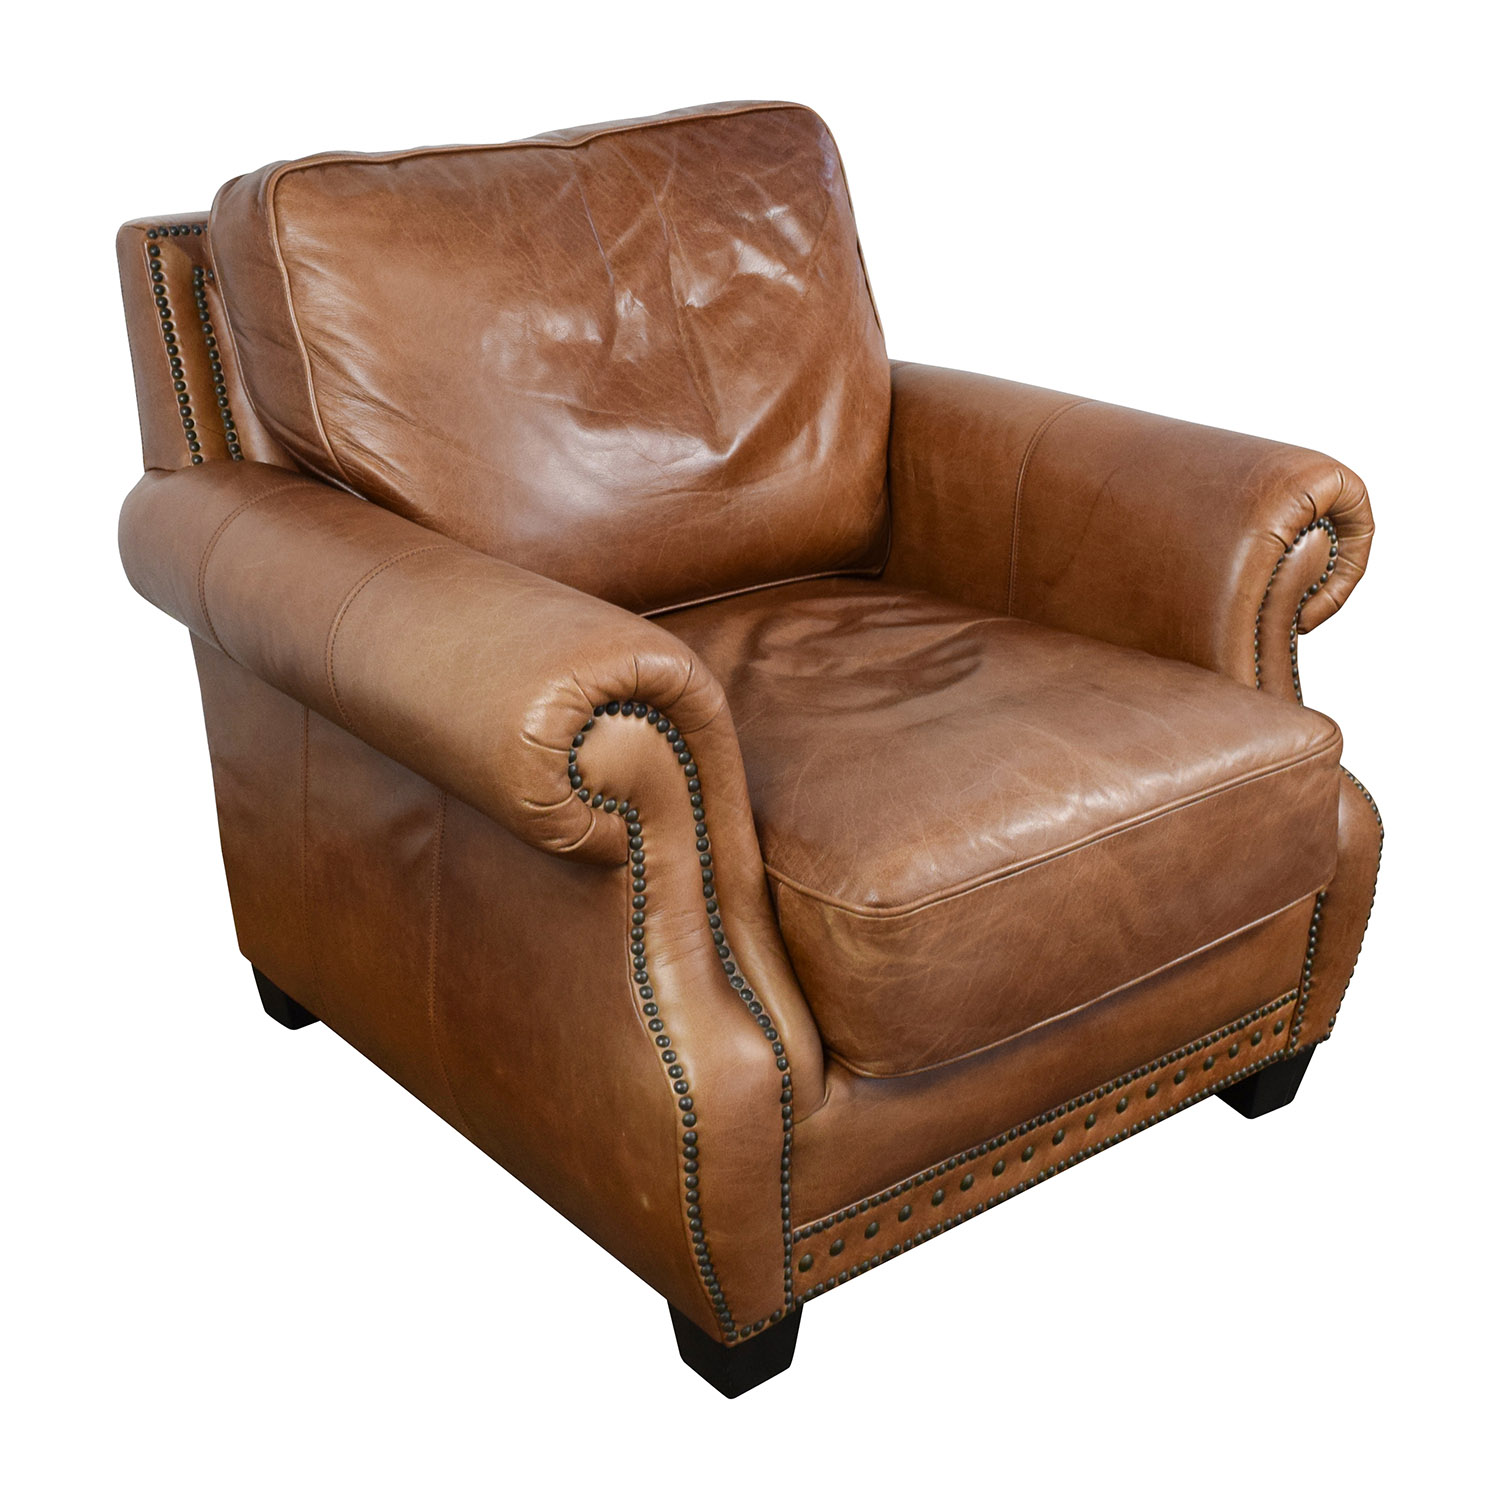 85% OFF Safavieh Couture Safavieh Couture Brayton Leather Chair